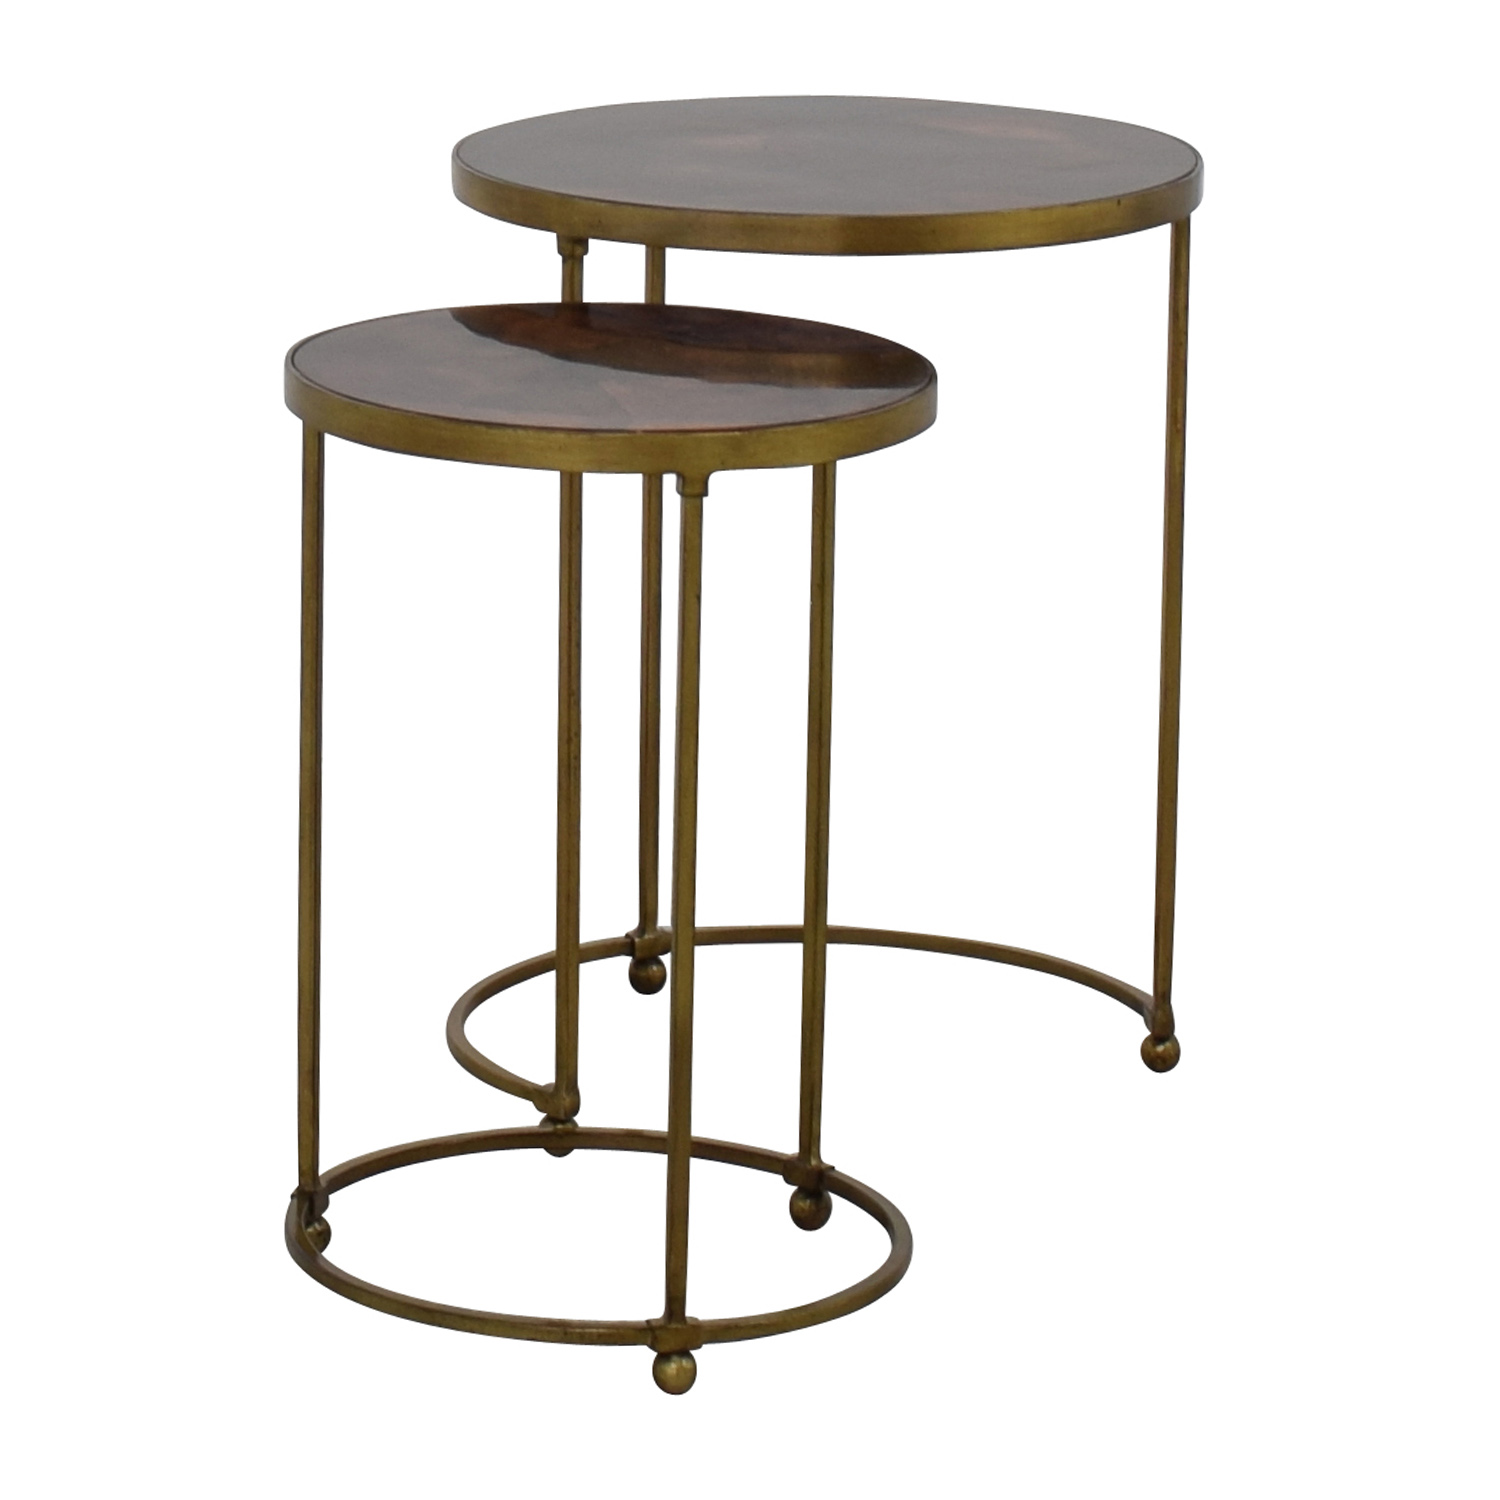 ABC Carpet and Home ABC Carpet & Home Nesting Round Bronze and Brass Accent Tables price